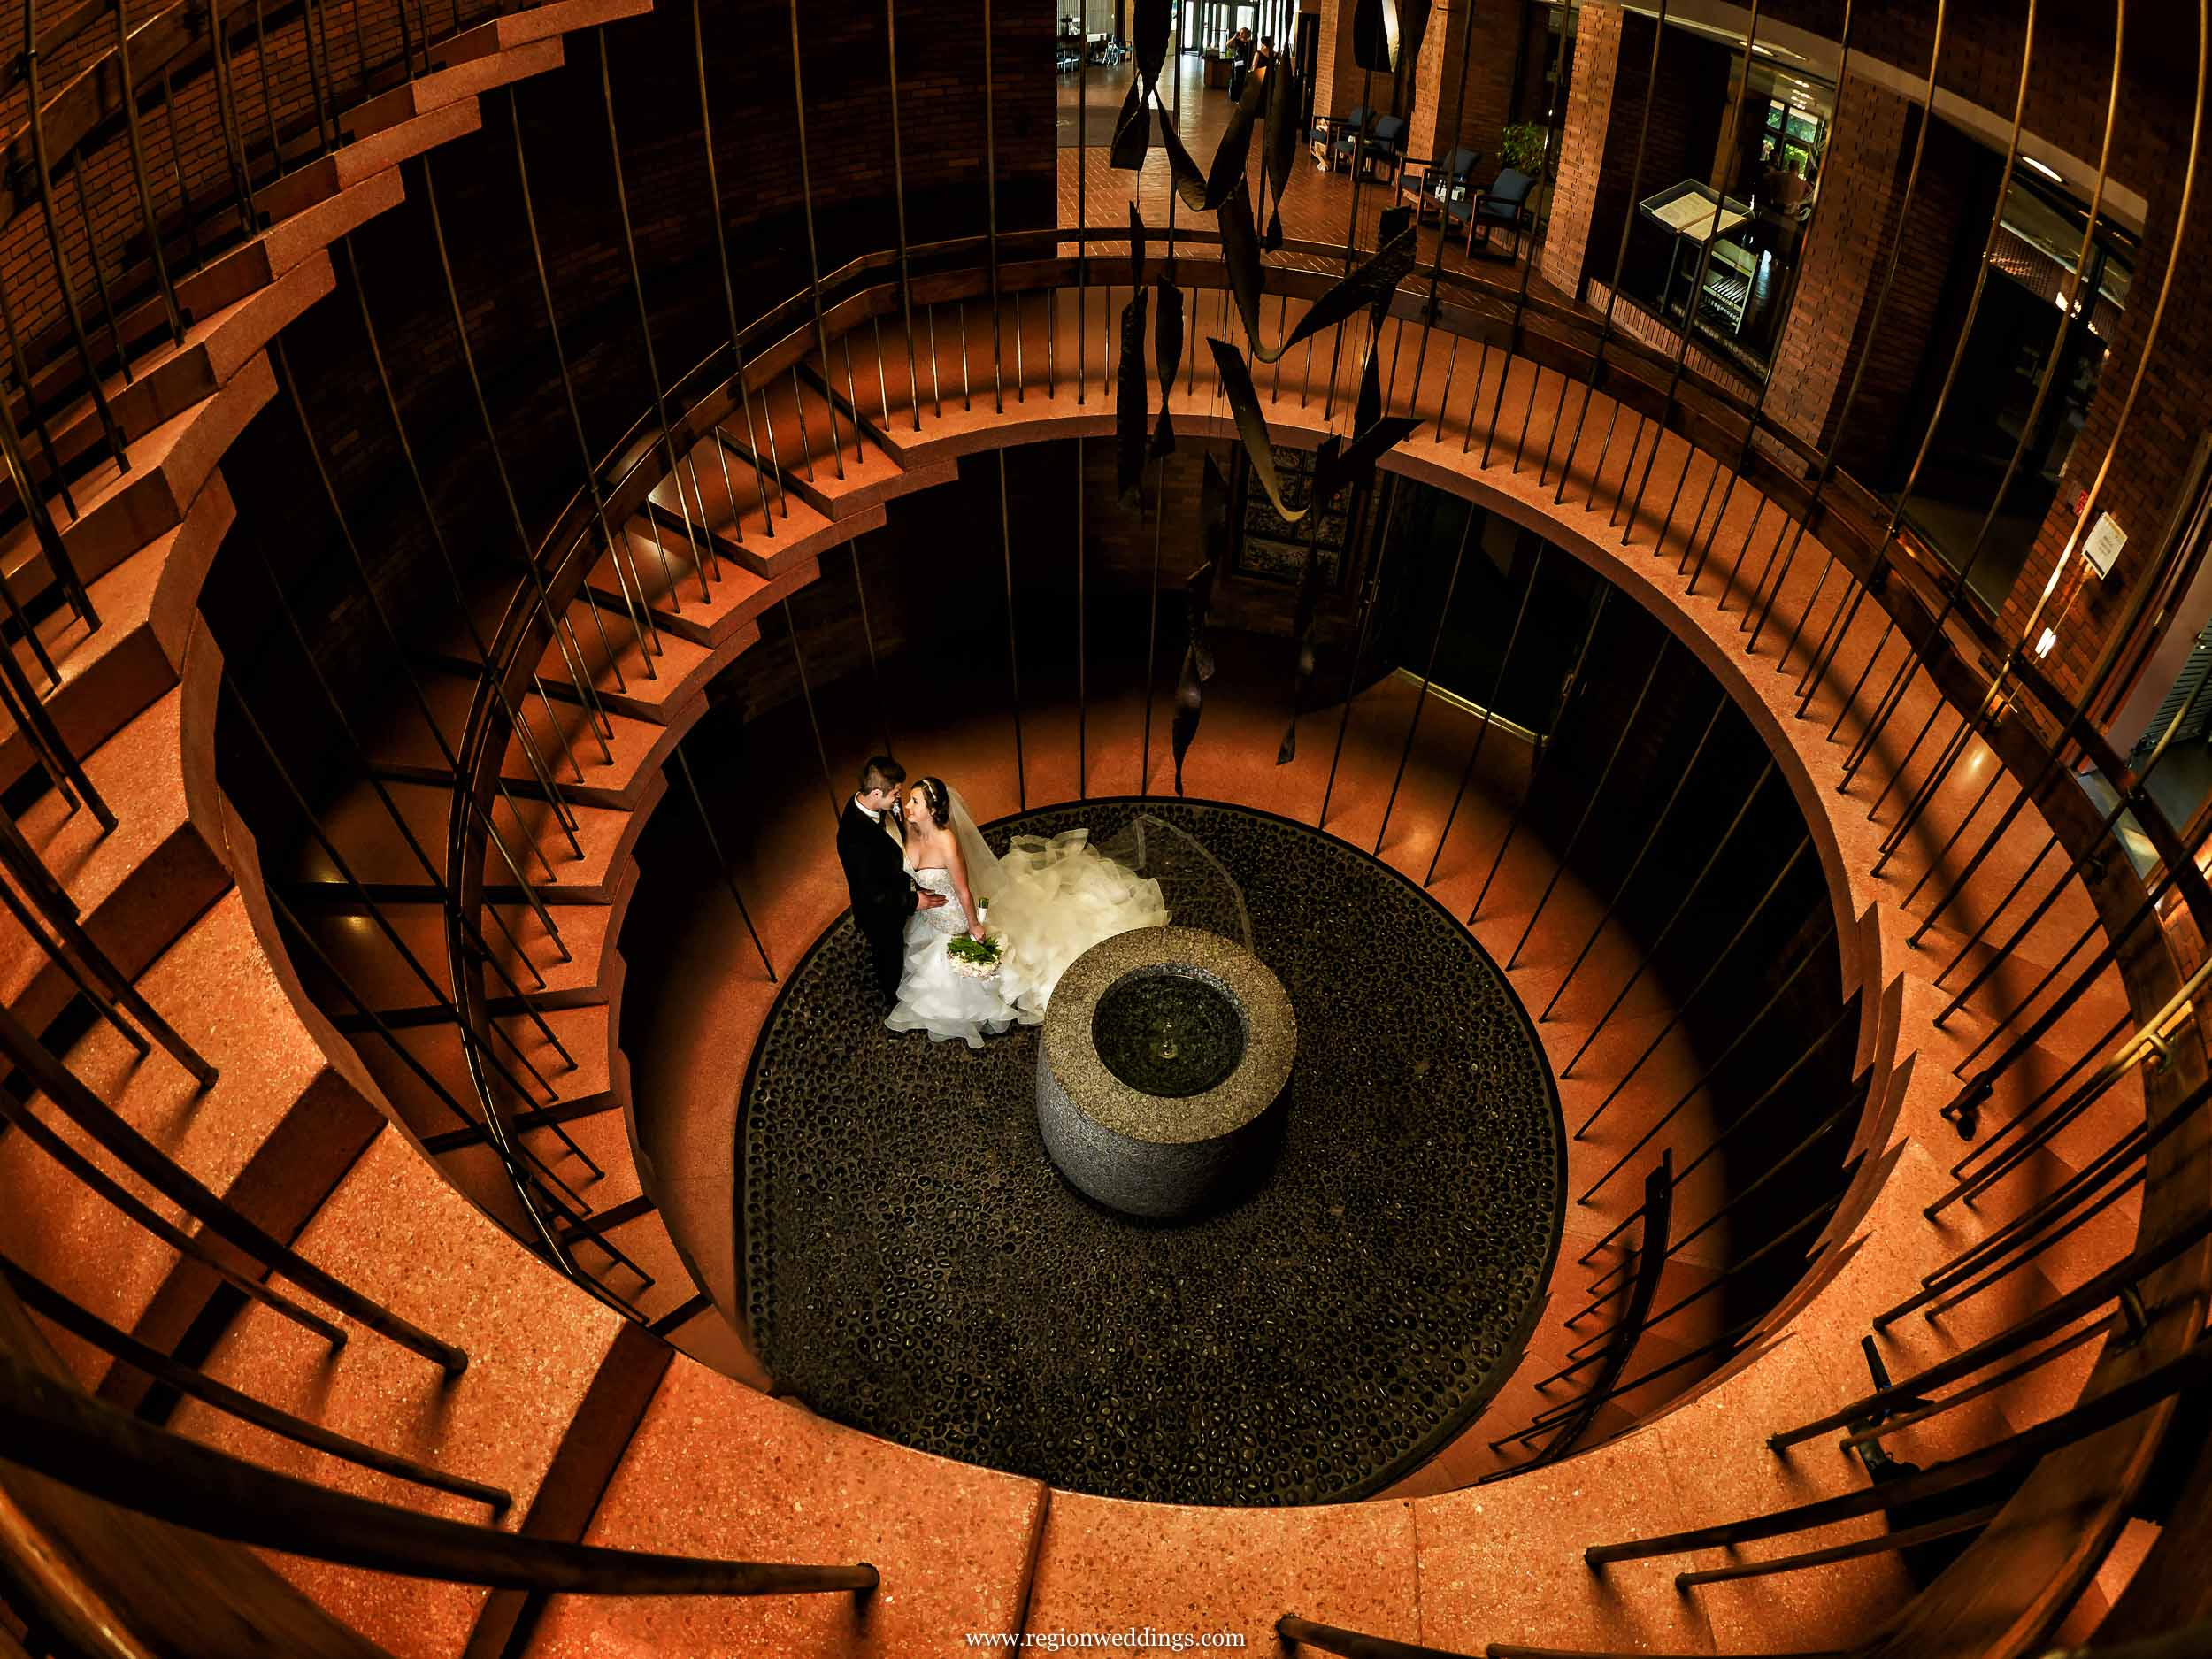 Bride and groom at the bottom of the spiral staircase at Valparaiso University.